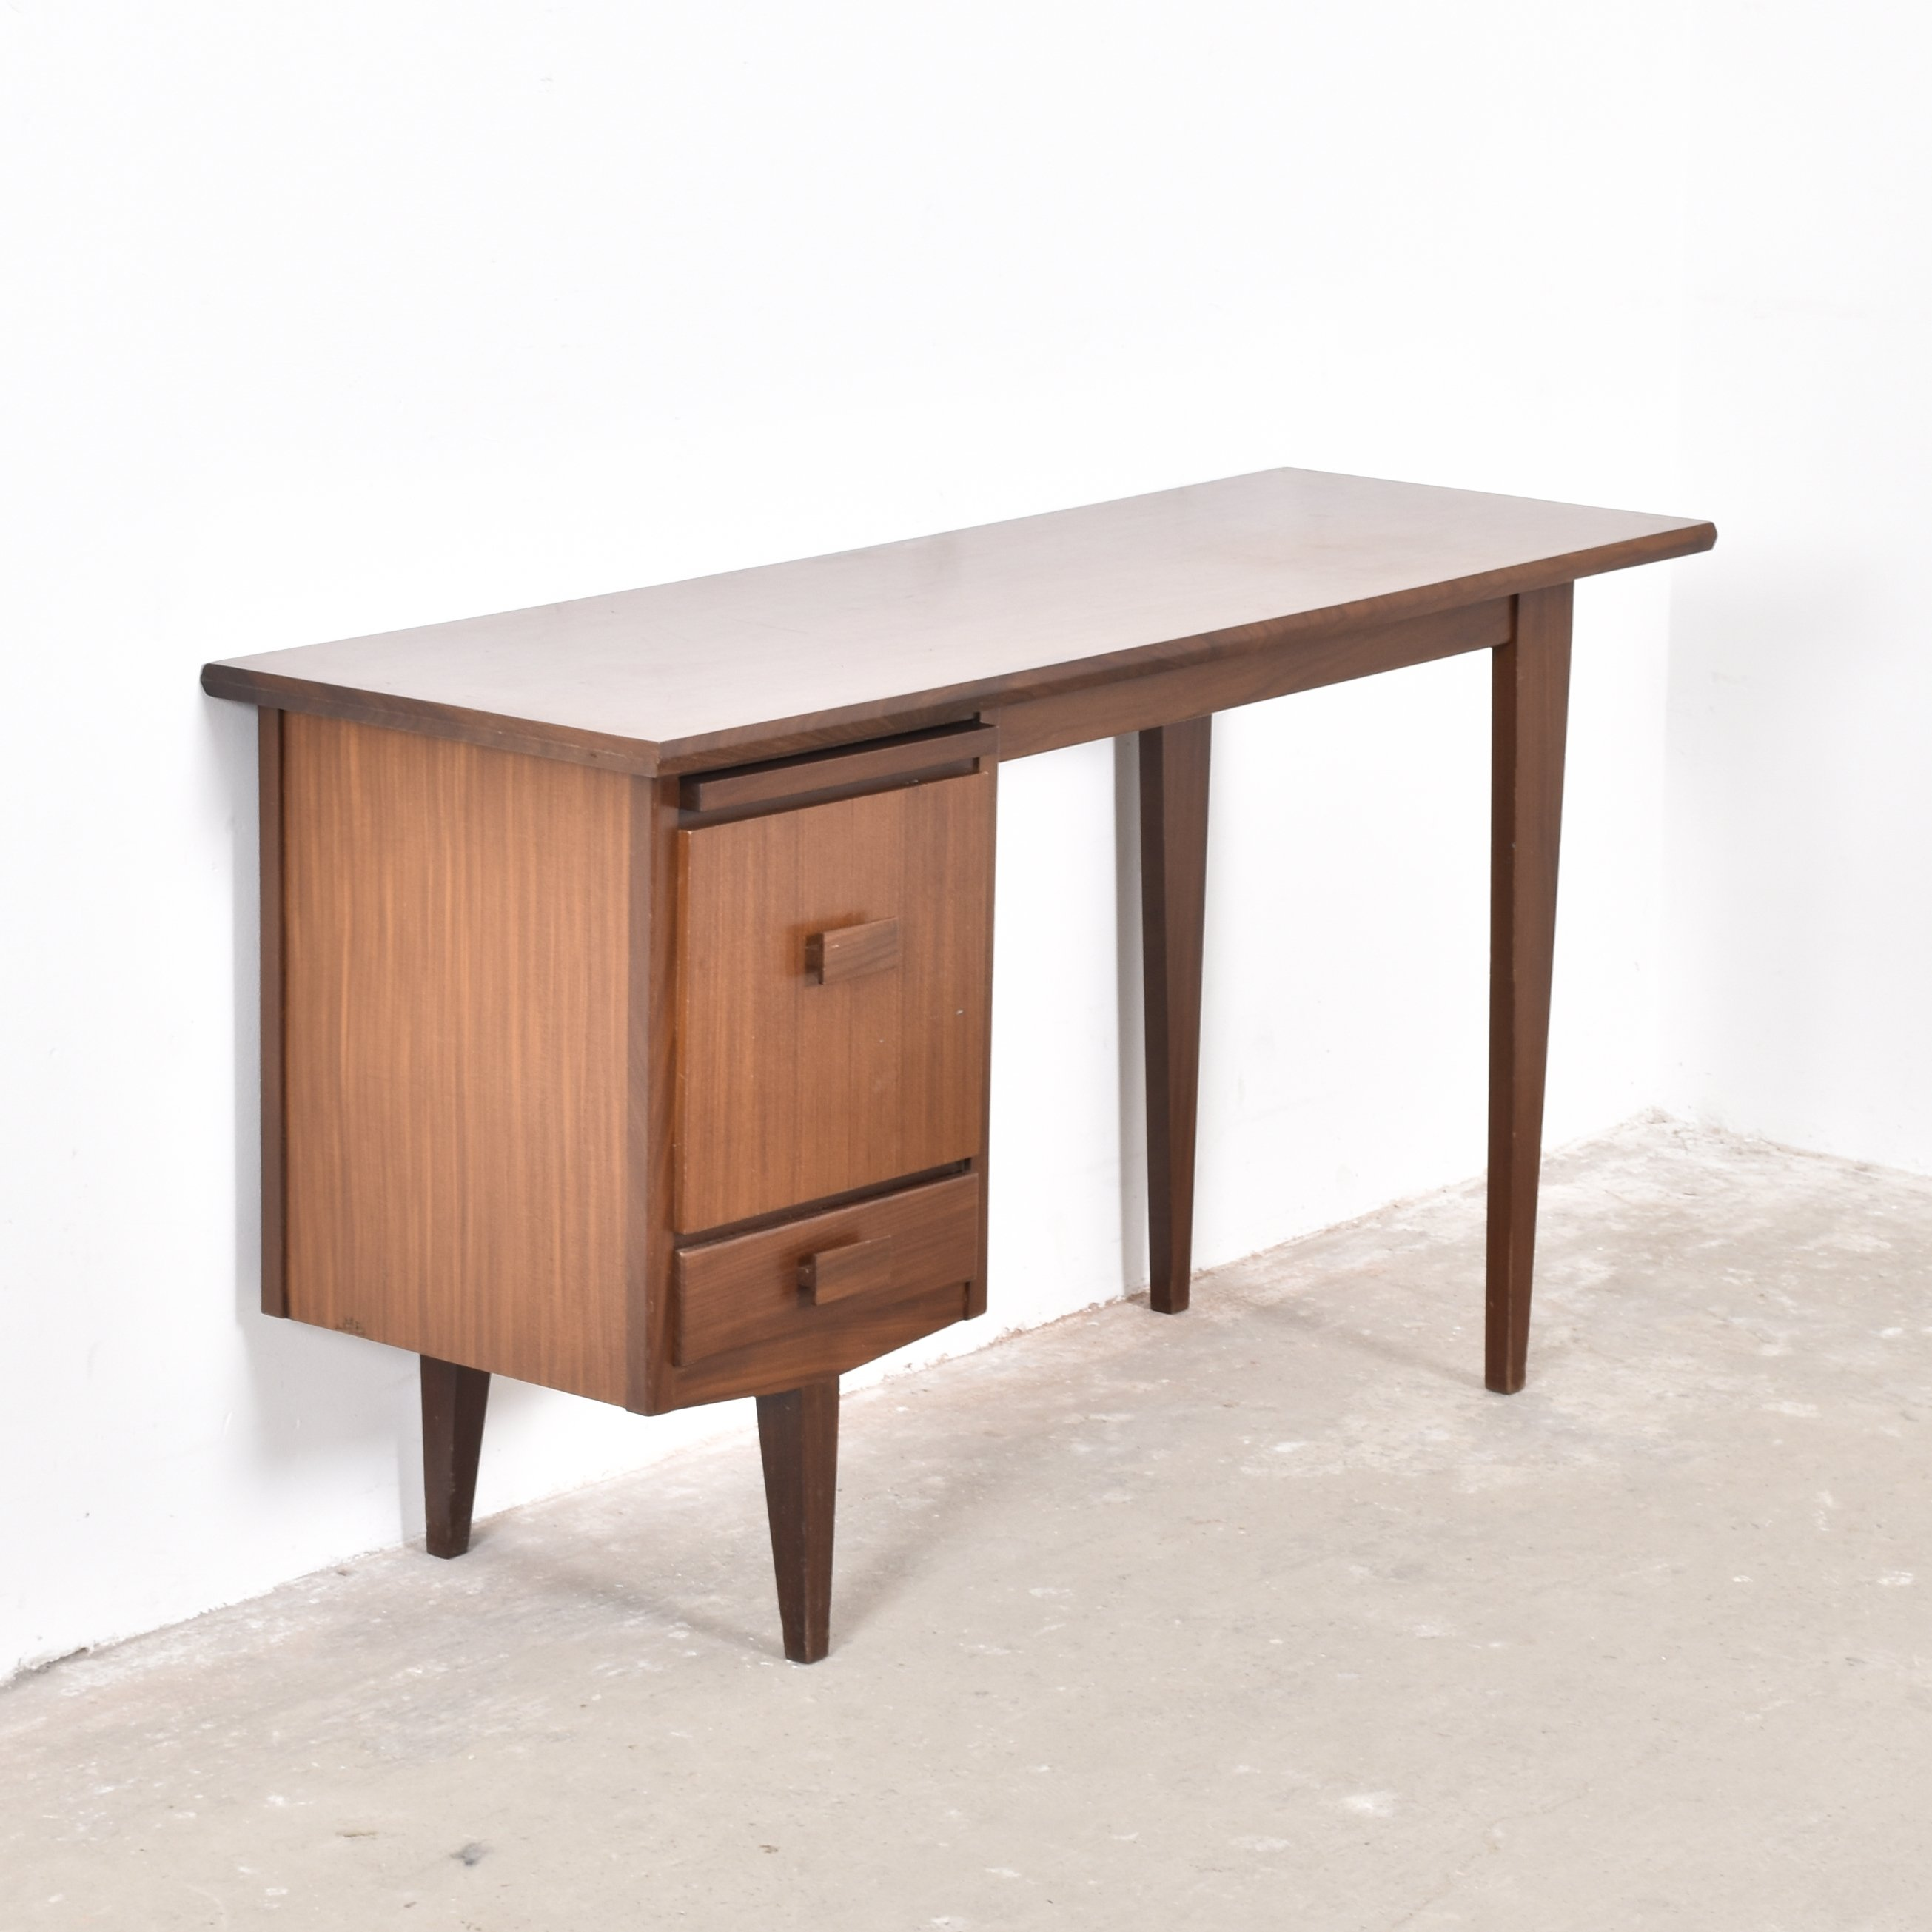 designer writing desk Browse knoll table desks, including iconic table desks and innovative height-adjustable solultions.